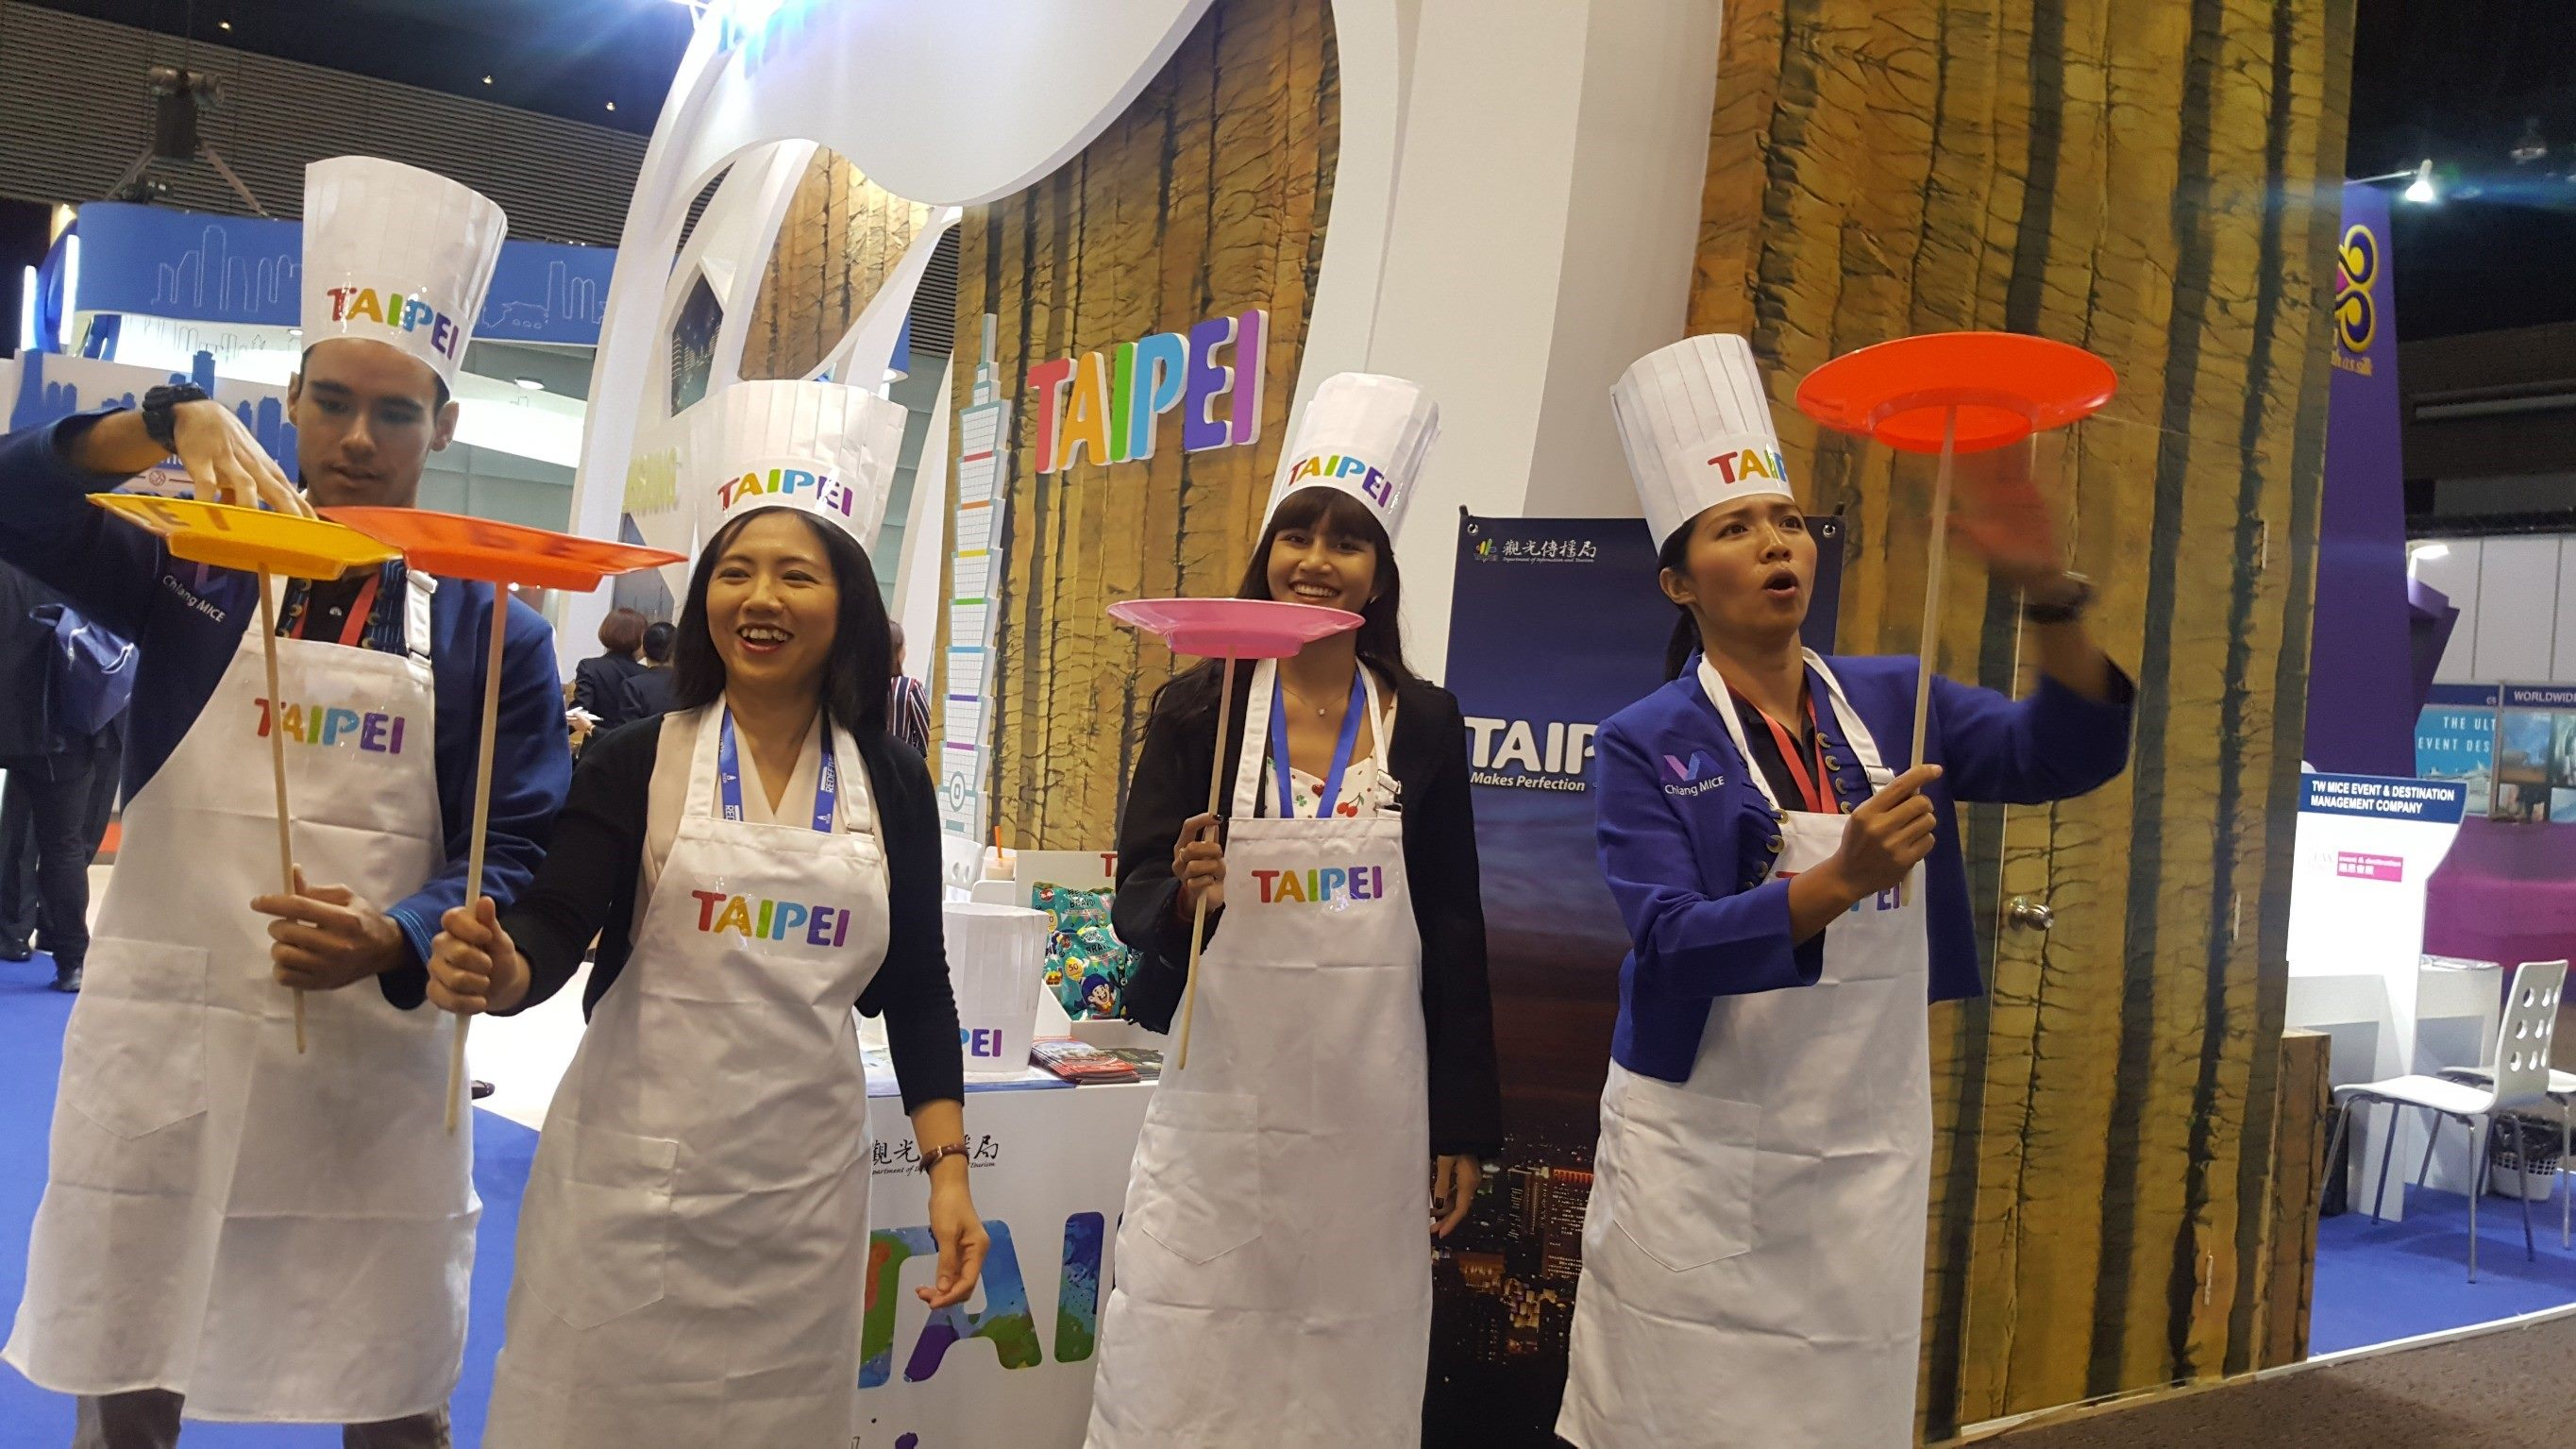 International buyers taking part in a fun Wheel of Fortune disk-spin show learned more about Taipei's Michelin cuisine, and competed to win pineapple cakes, a favorite Taipei souvenir, and limited-edition Bravo Kuai Kuai Birthday Gift Snack Bags.